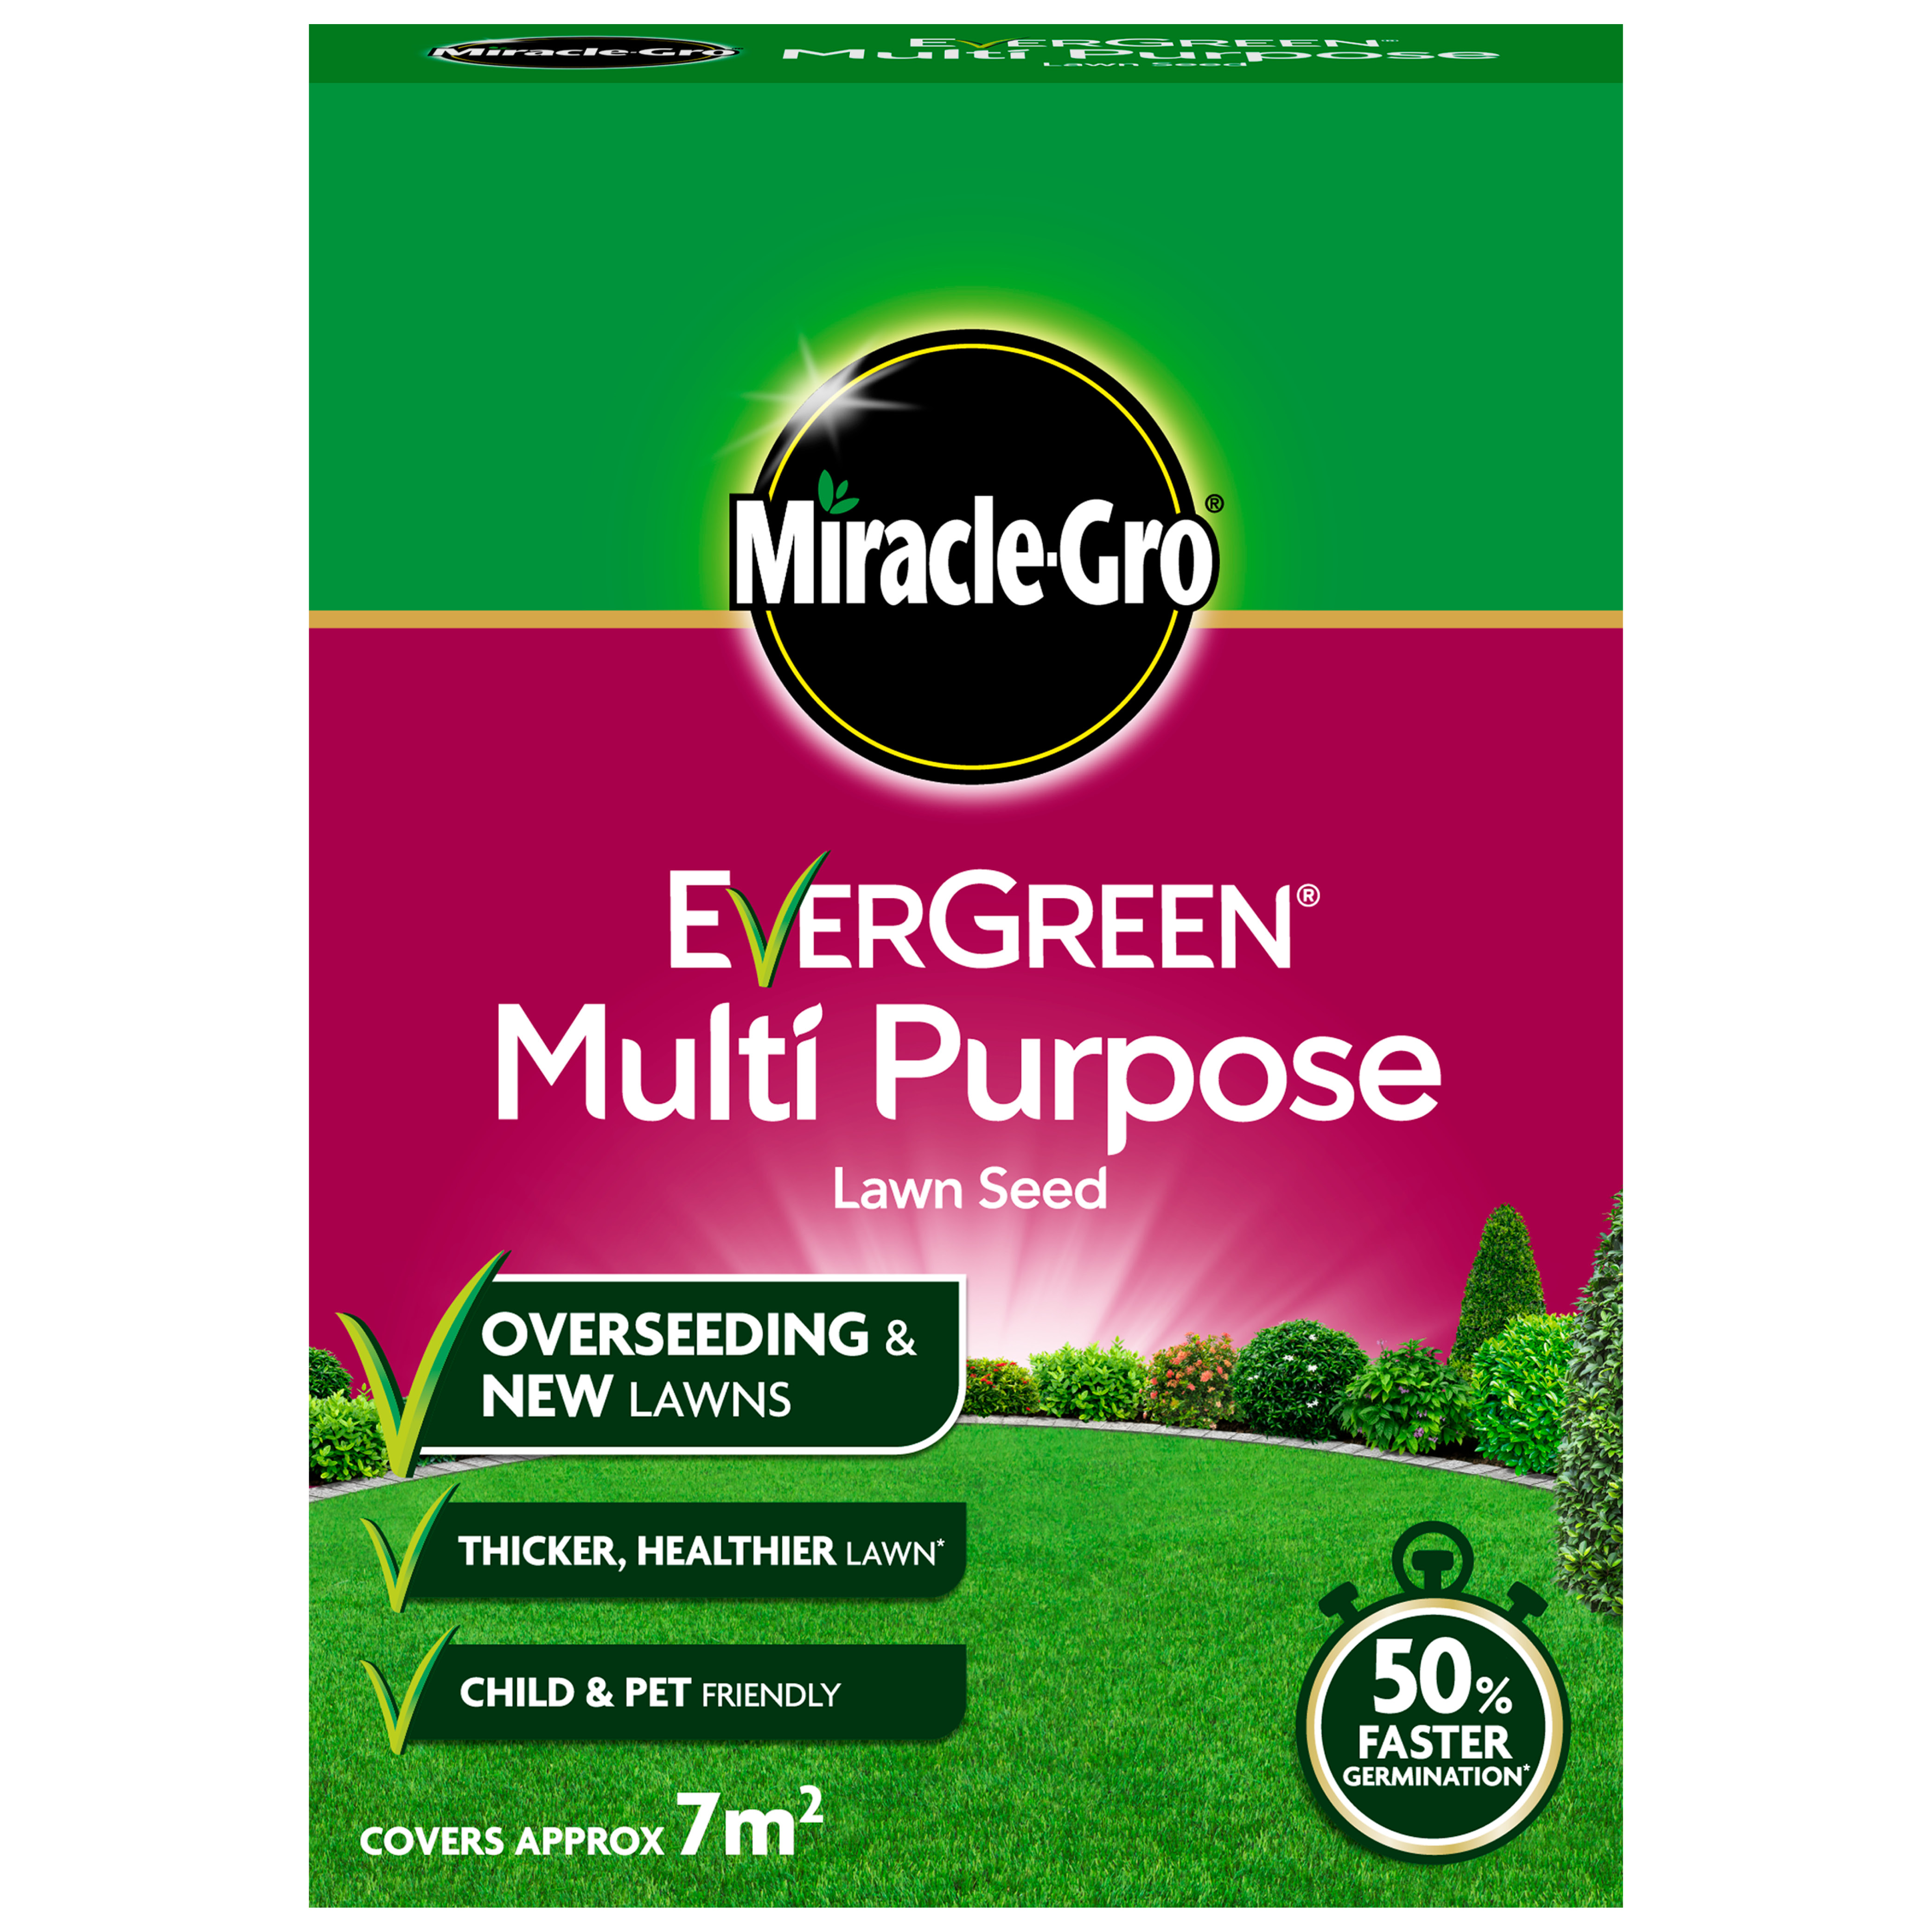 MIRACLE-GRO® EVERGREEN® MULTI PURPOSE LAWN SEED 210g